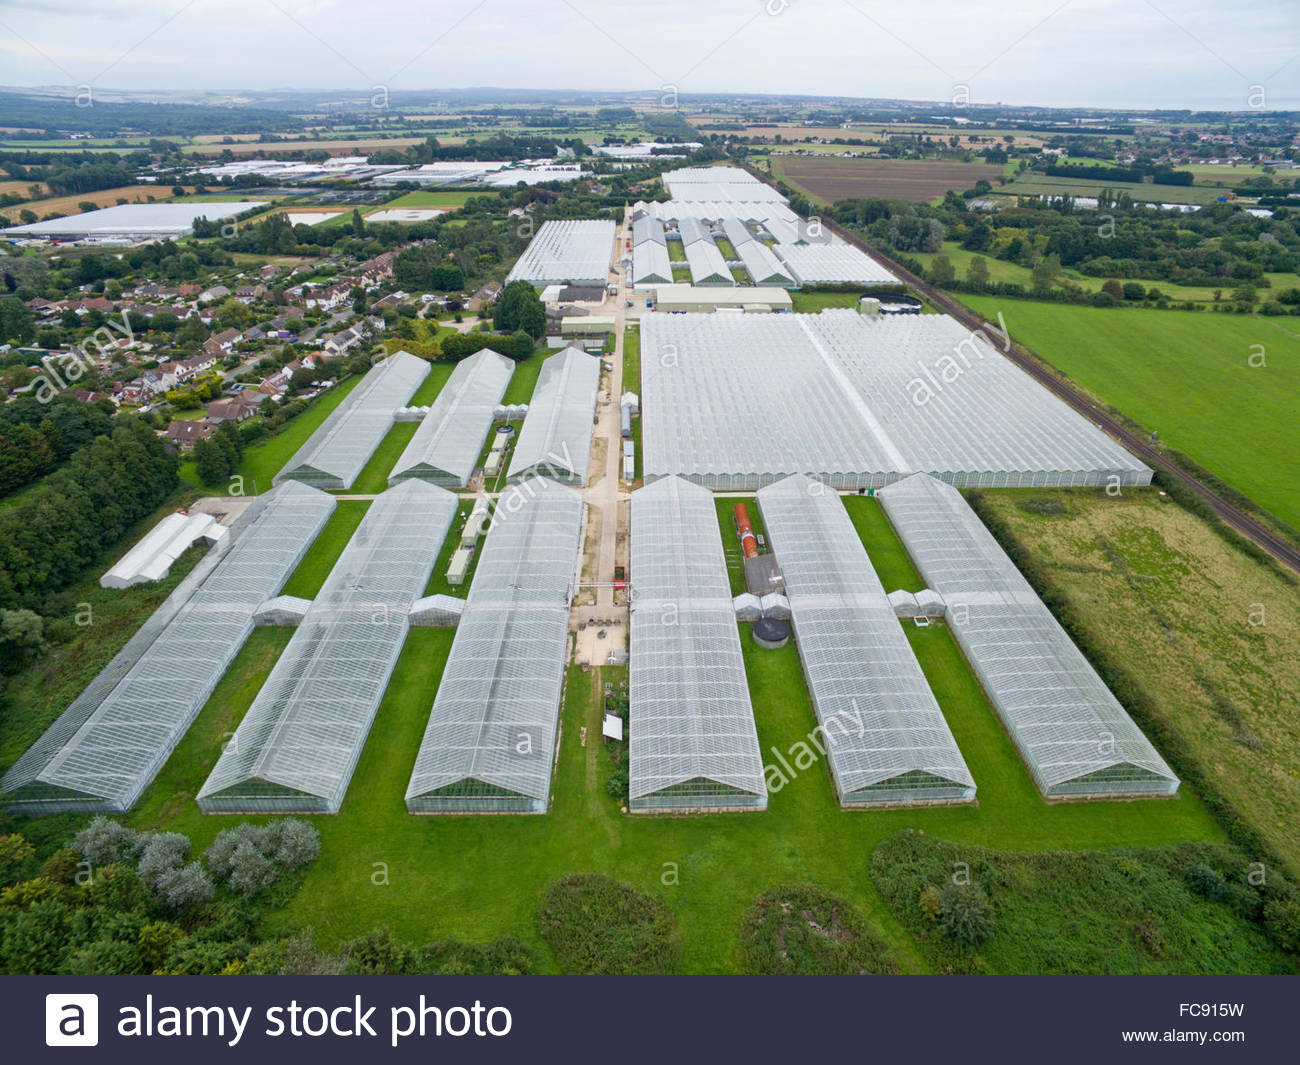 Aerial view of tomato farm greenhouses - Stock Image